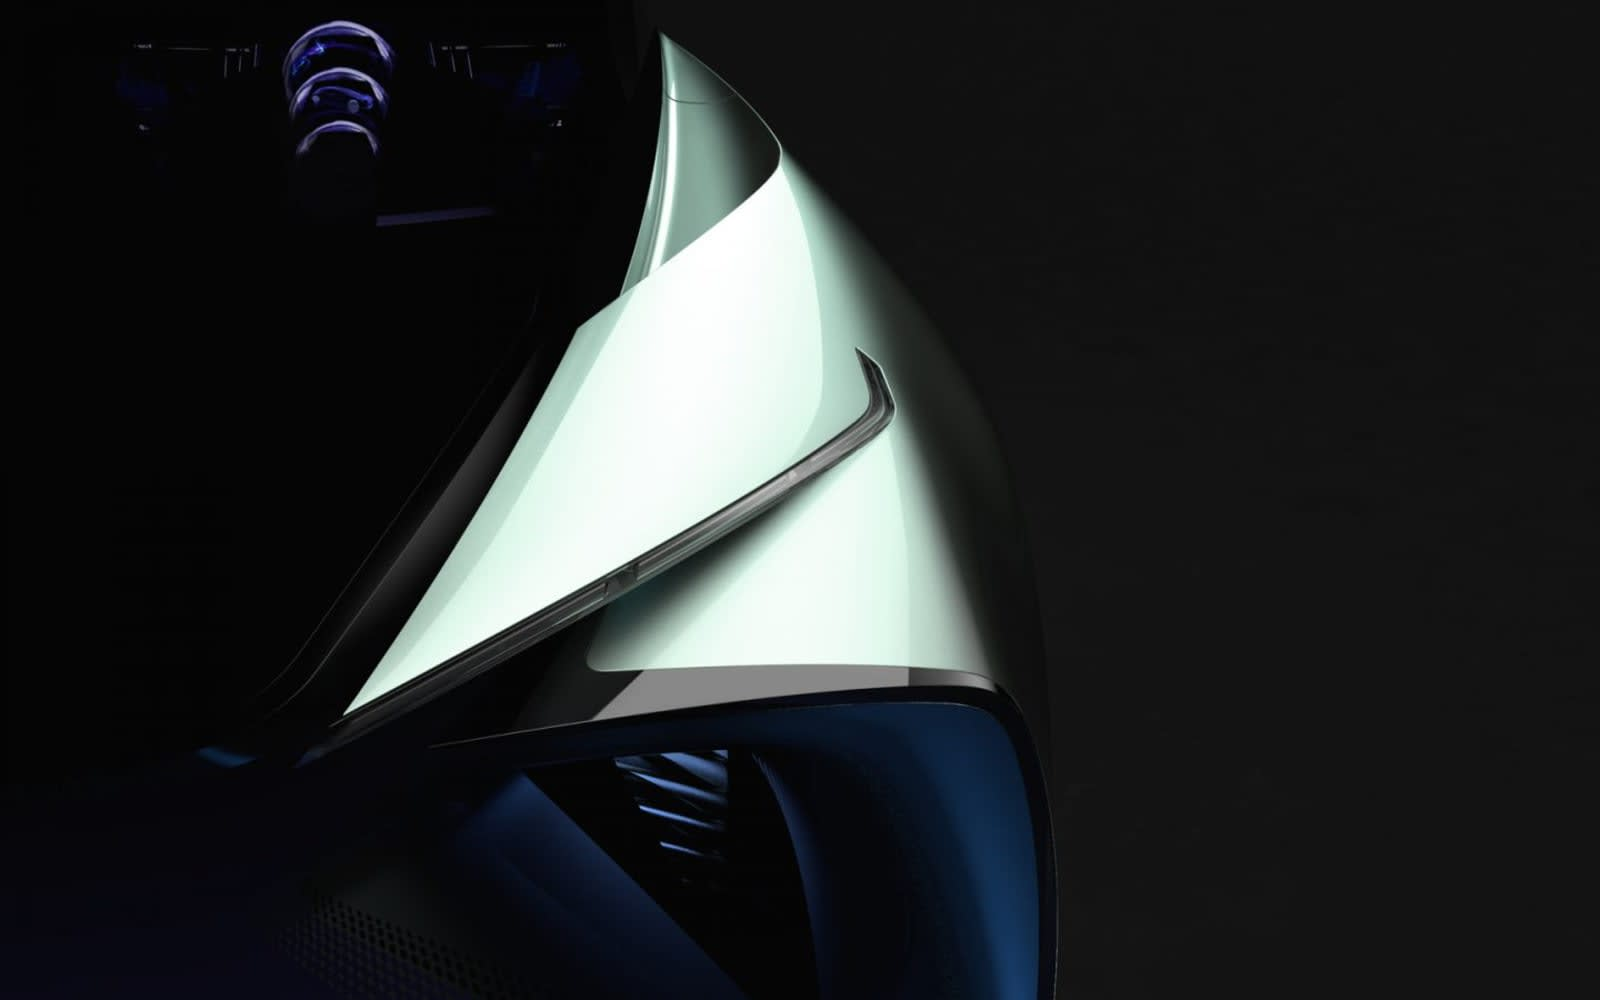 Lexus teases its EV concept ahead of the Tokyo Motor Show